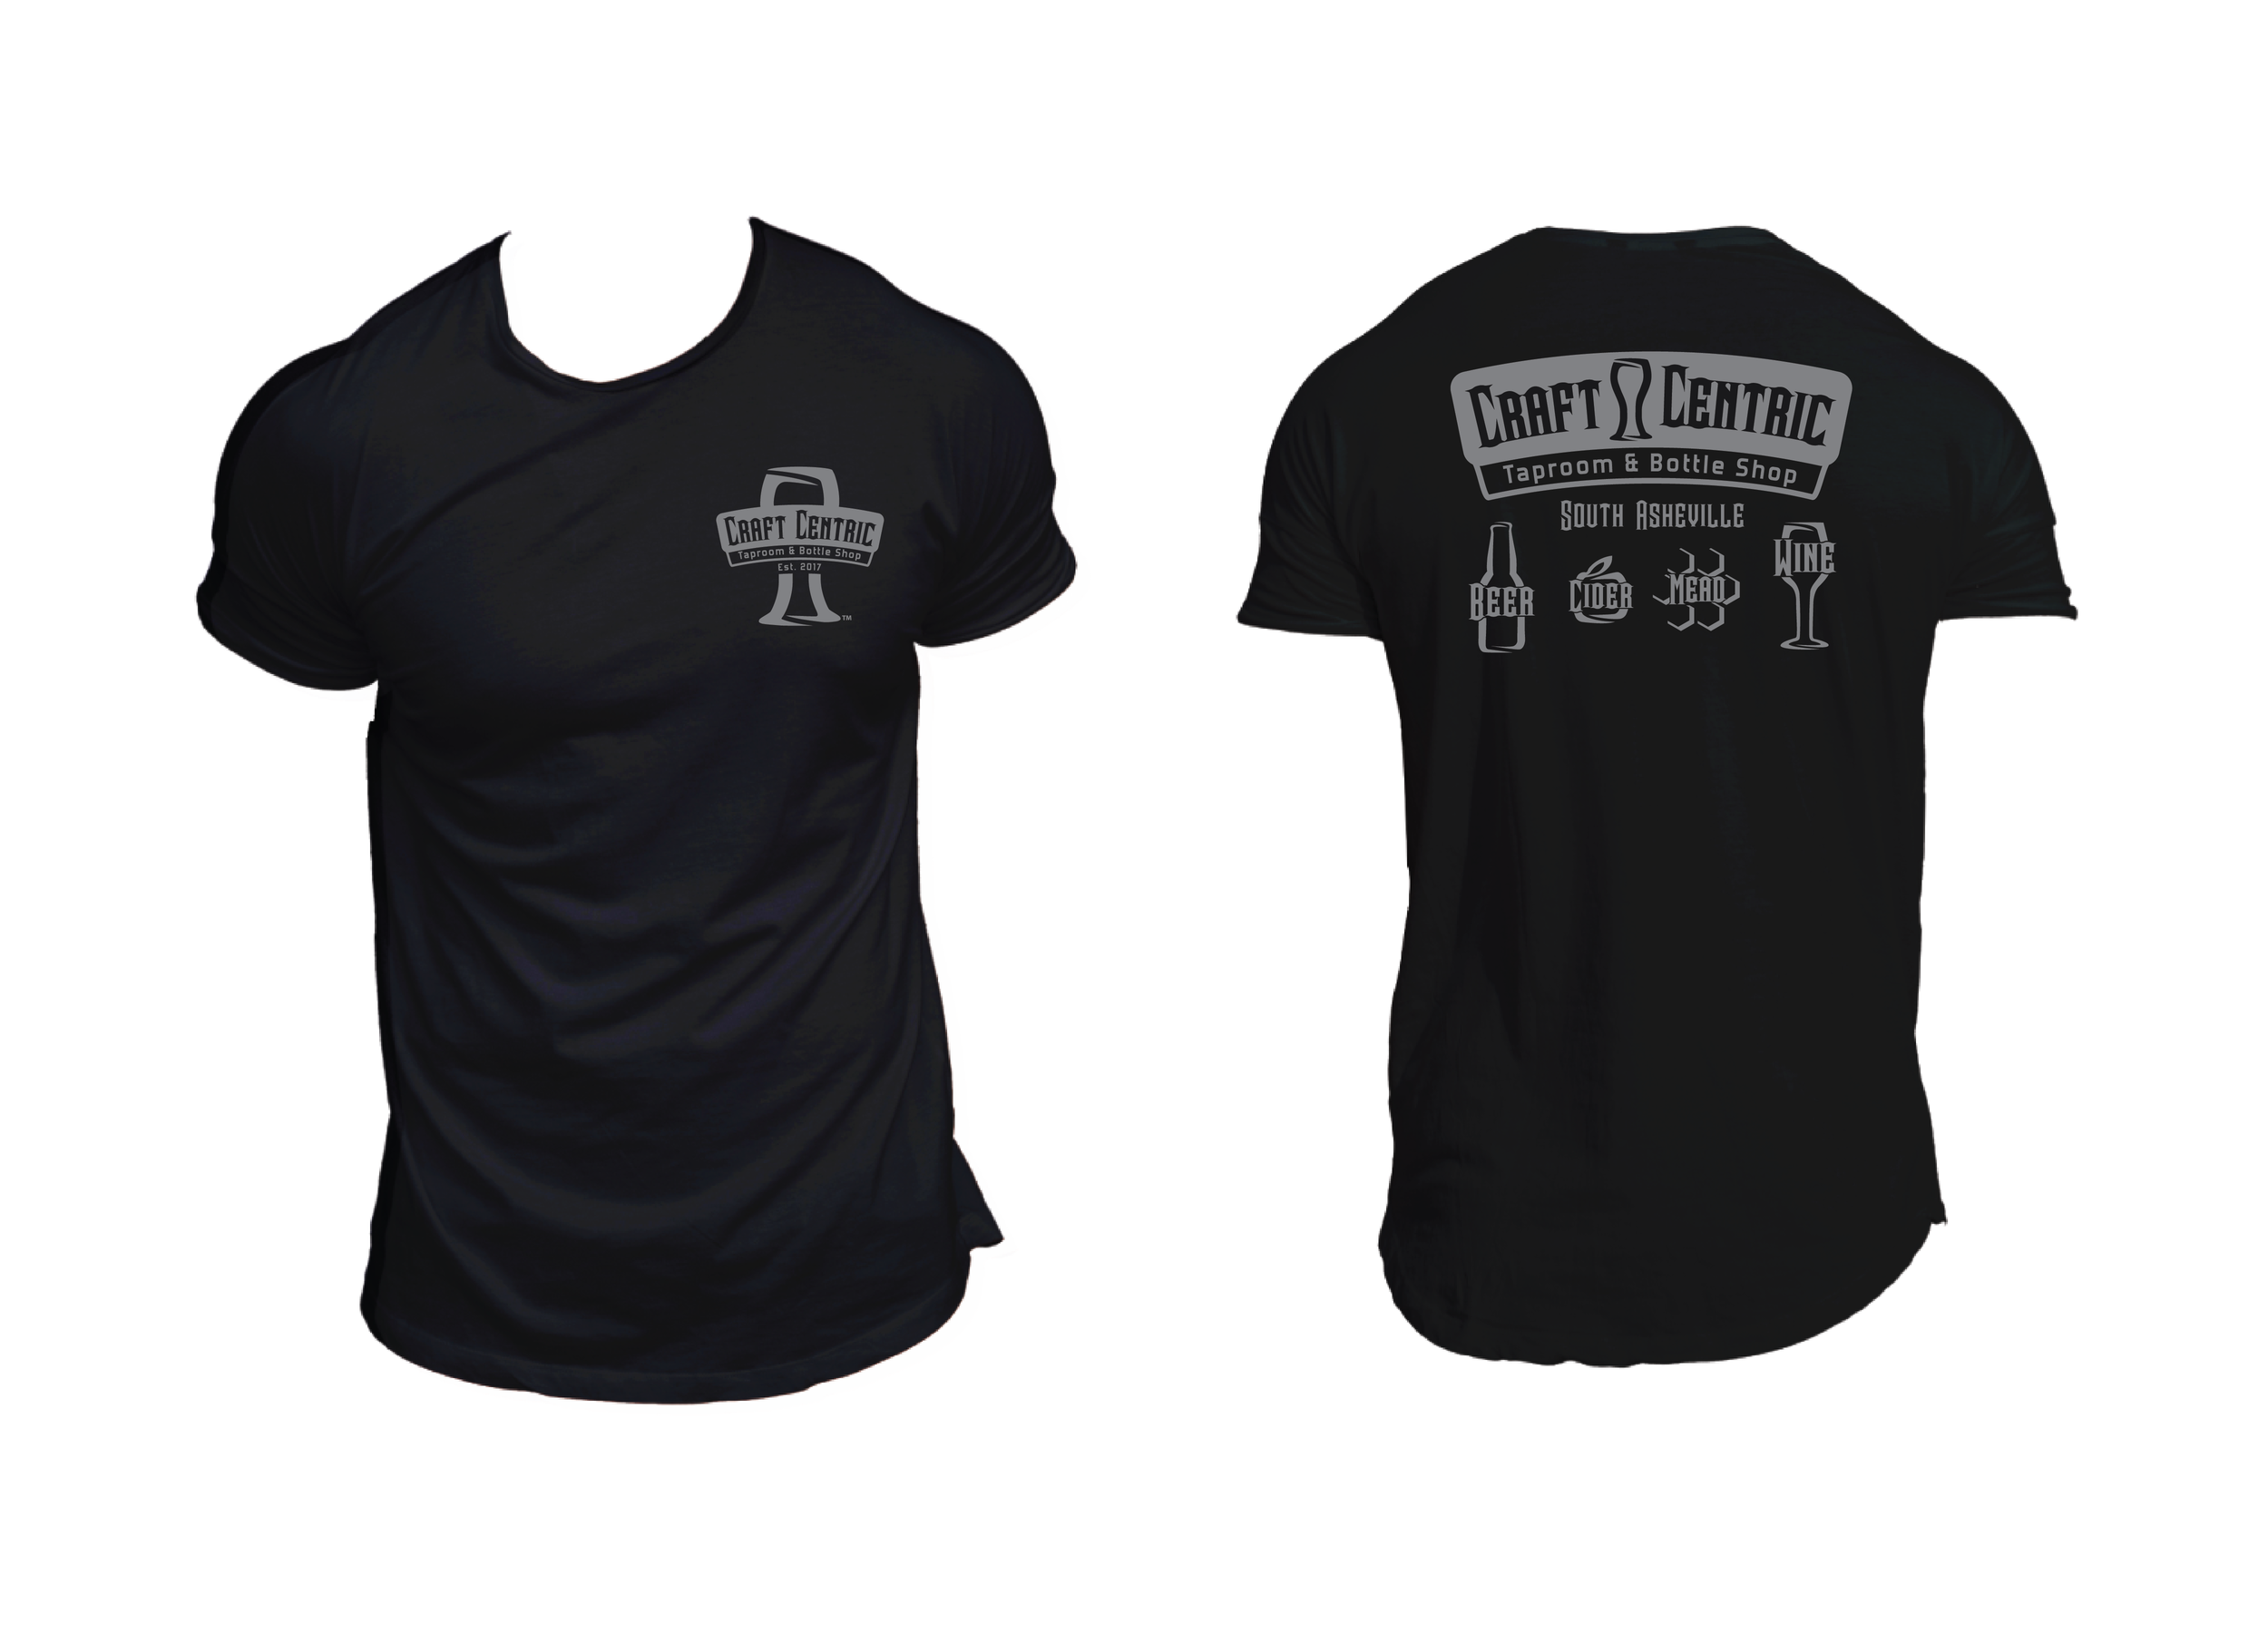 17CCC-TSHIRTS REV A3 APPROVED SEND -01-01-01.png